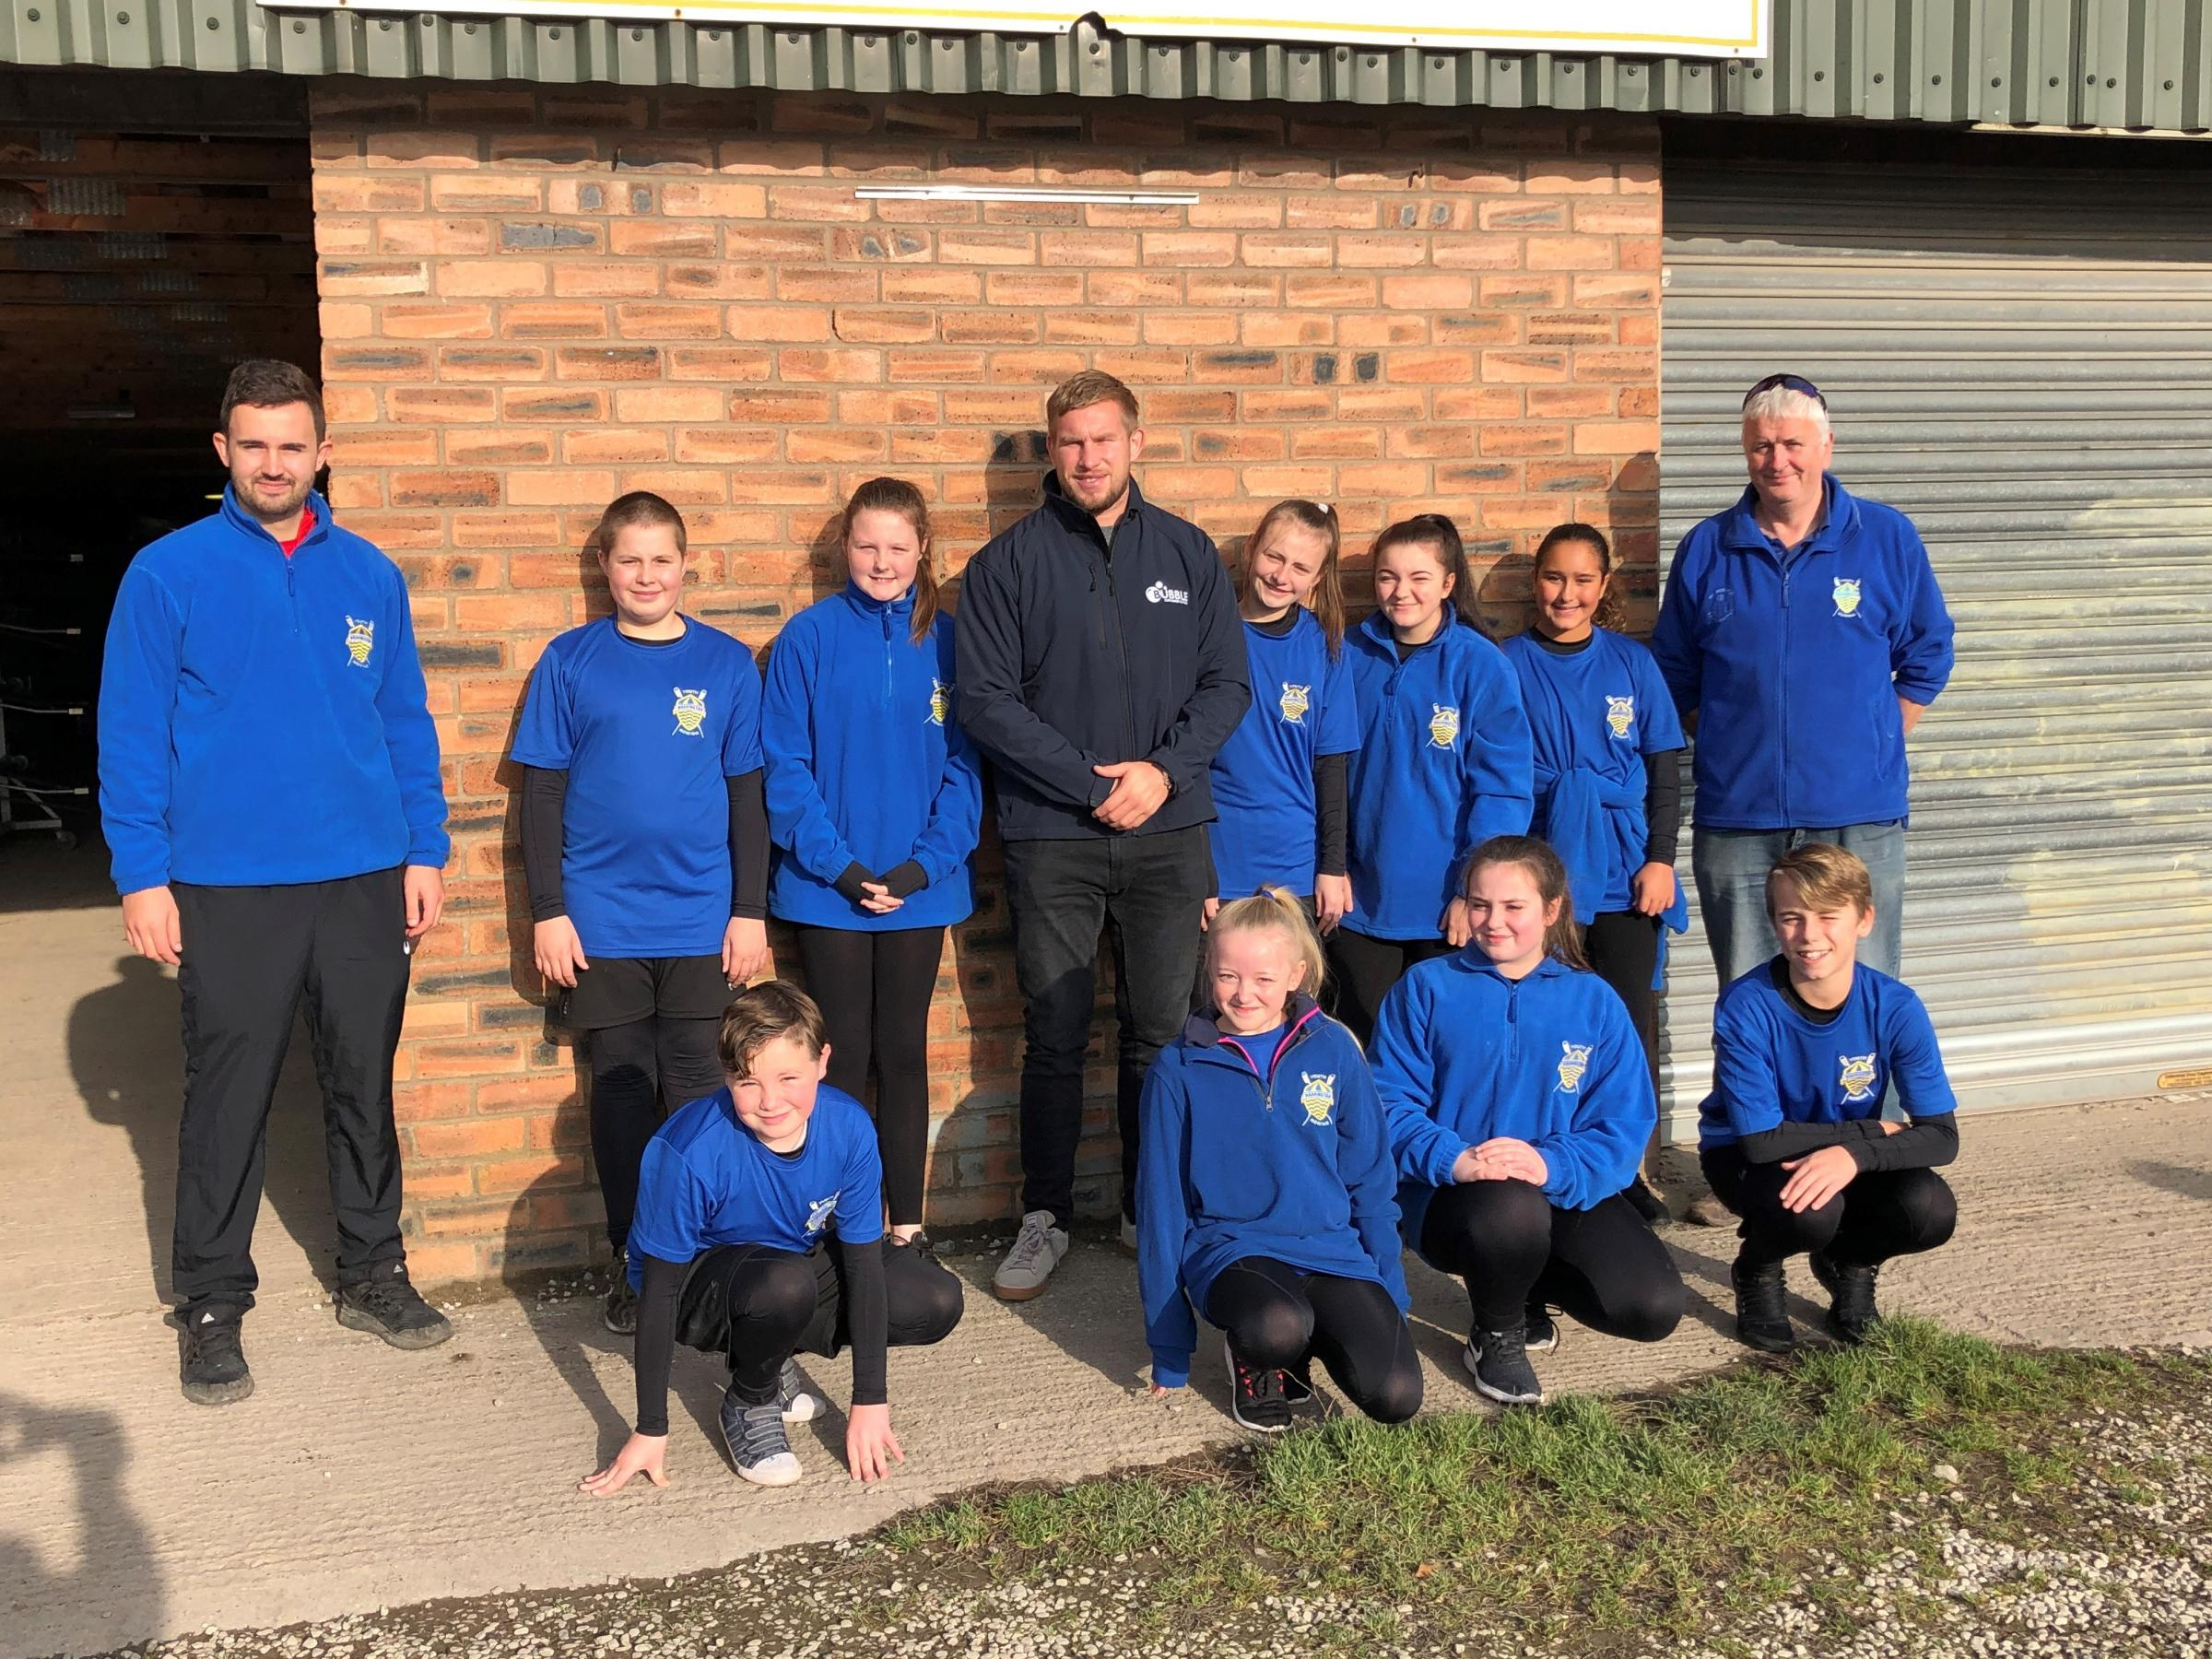 Mike Cooper paid a visit to Warrington Youth Rowing